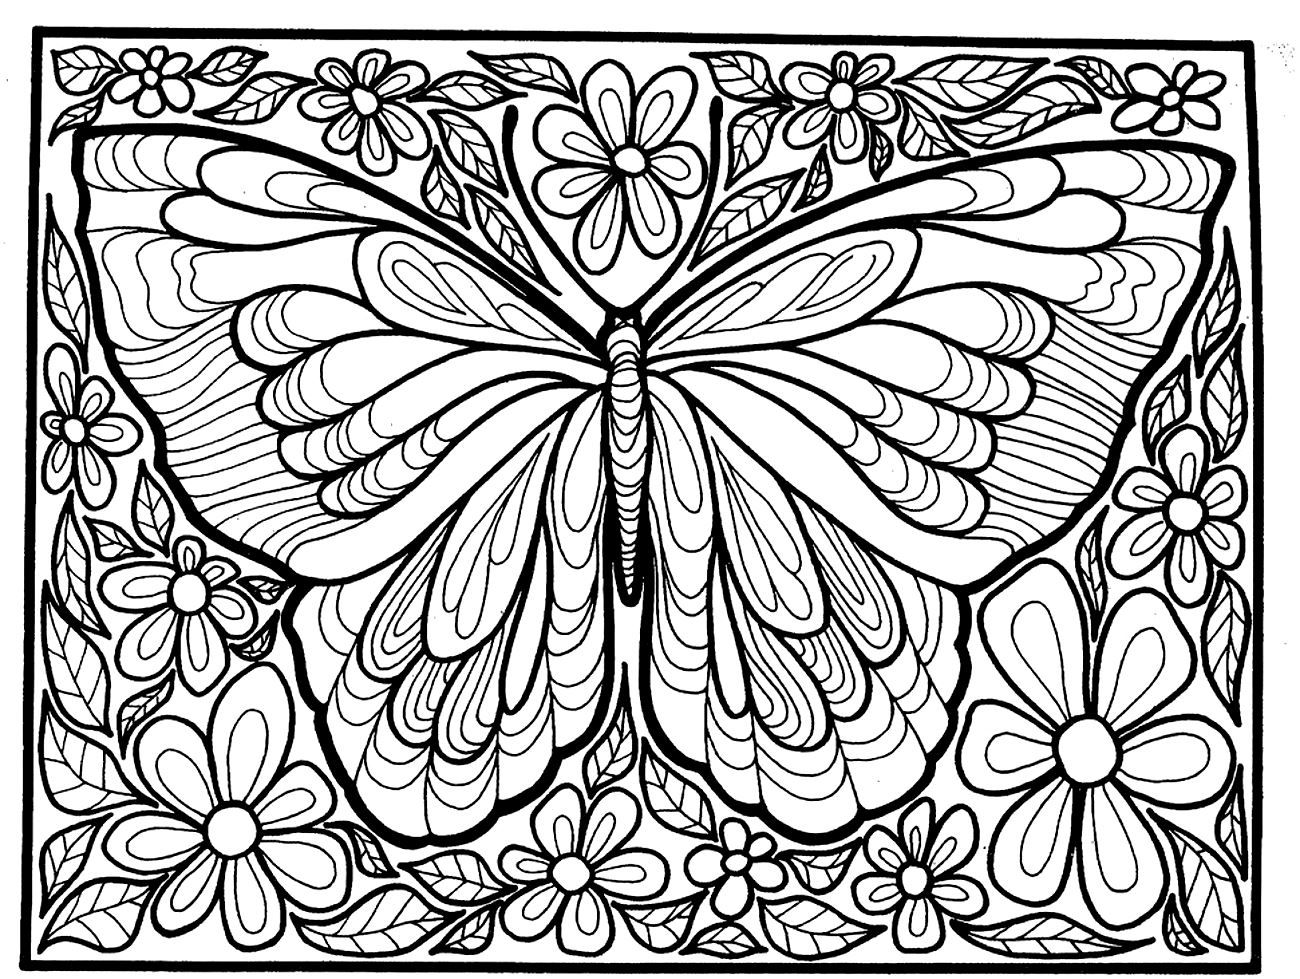 Insects Animals Coloring Pages For Adults Butterfly Coloring Page Animal Coloring Pages Insect Coloring Pages